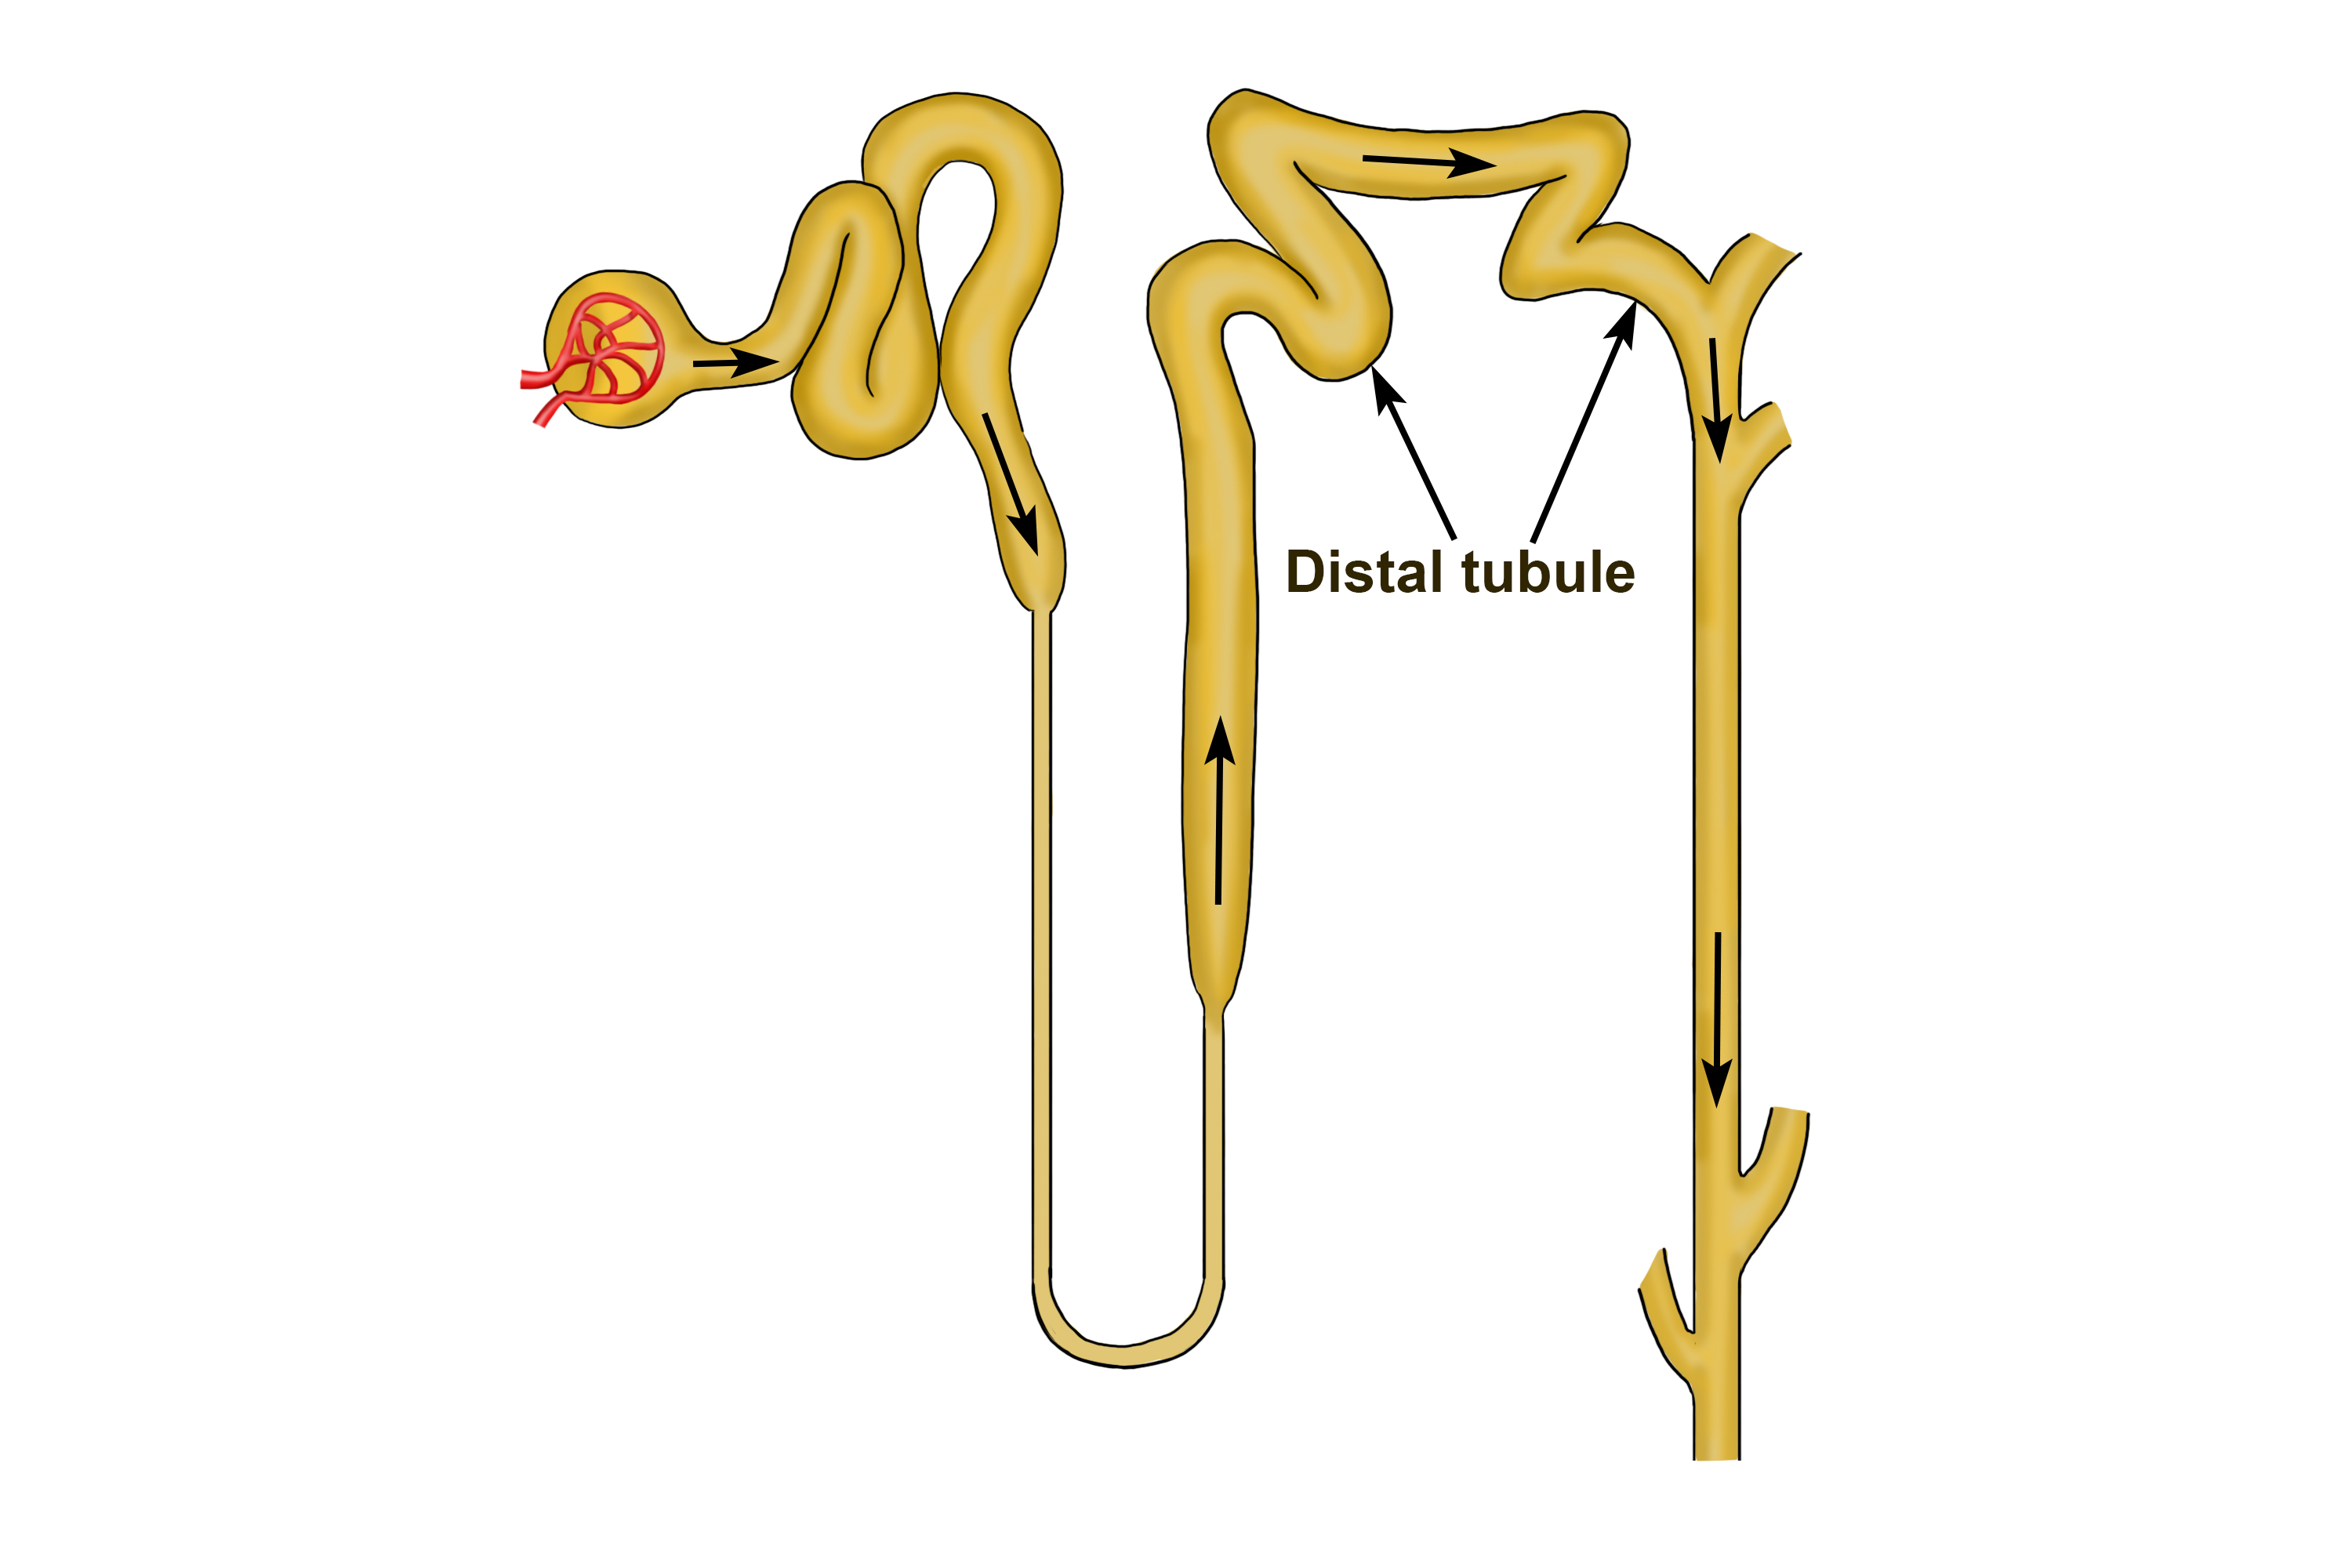 Tubules Are Very Narrow Tubes That Take Waster Out Of Blood